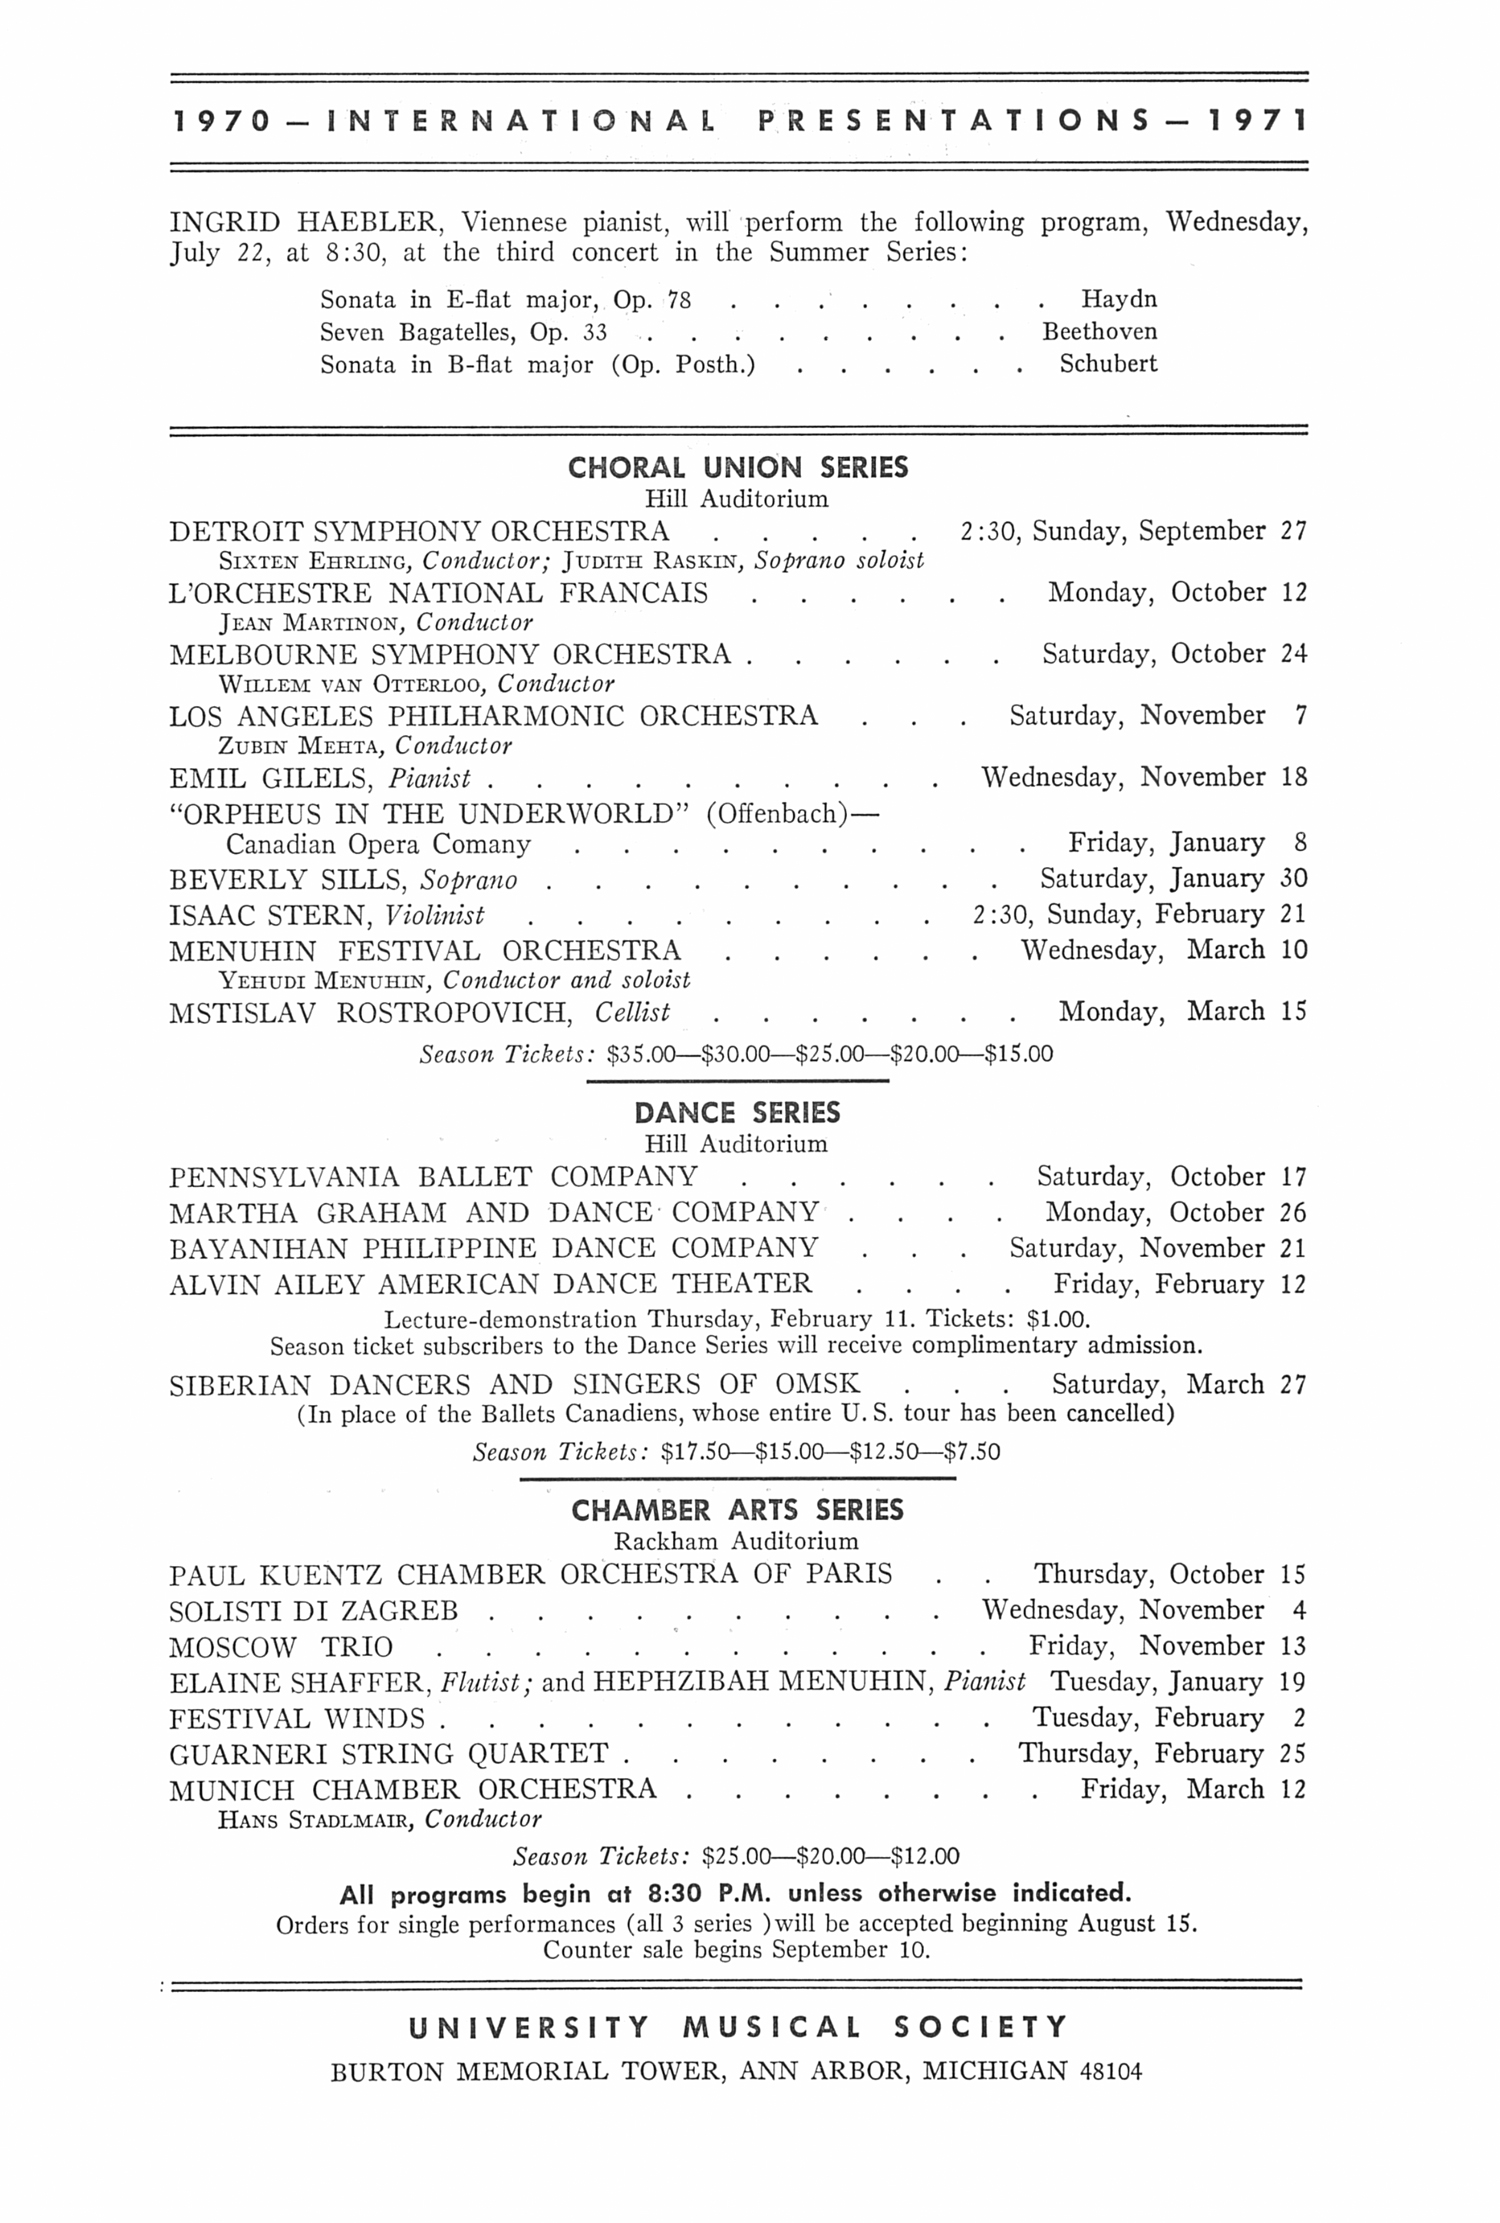 UMS Concert Program, July 16, 197o: Gabriel Tacchino --  image